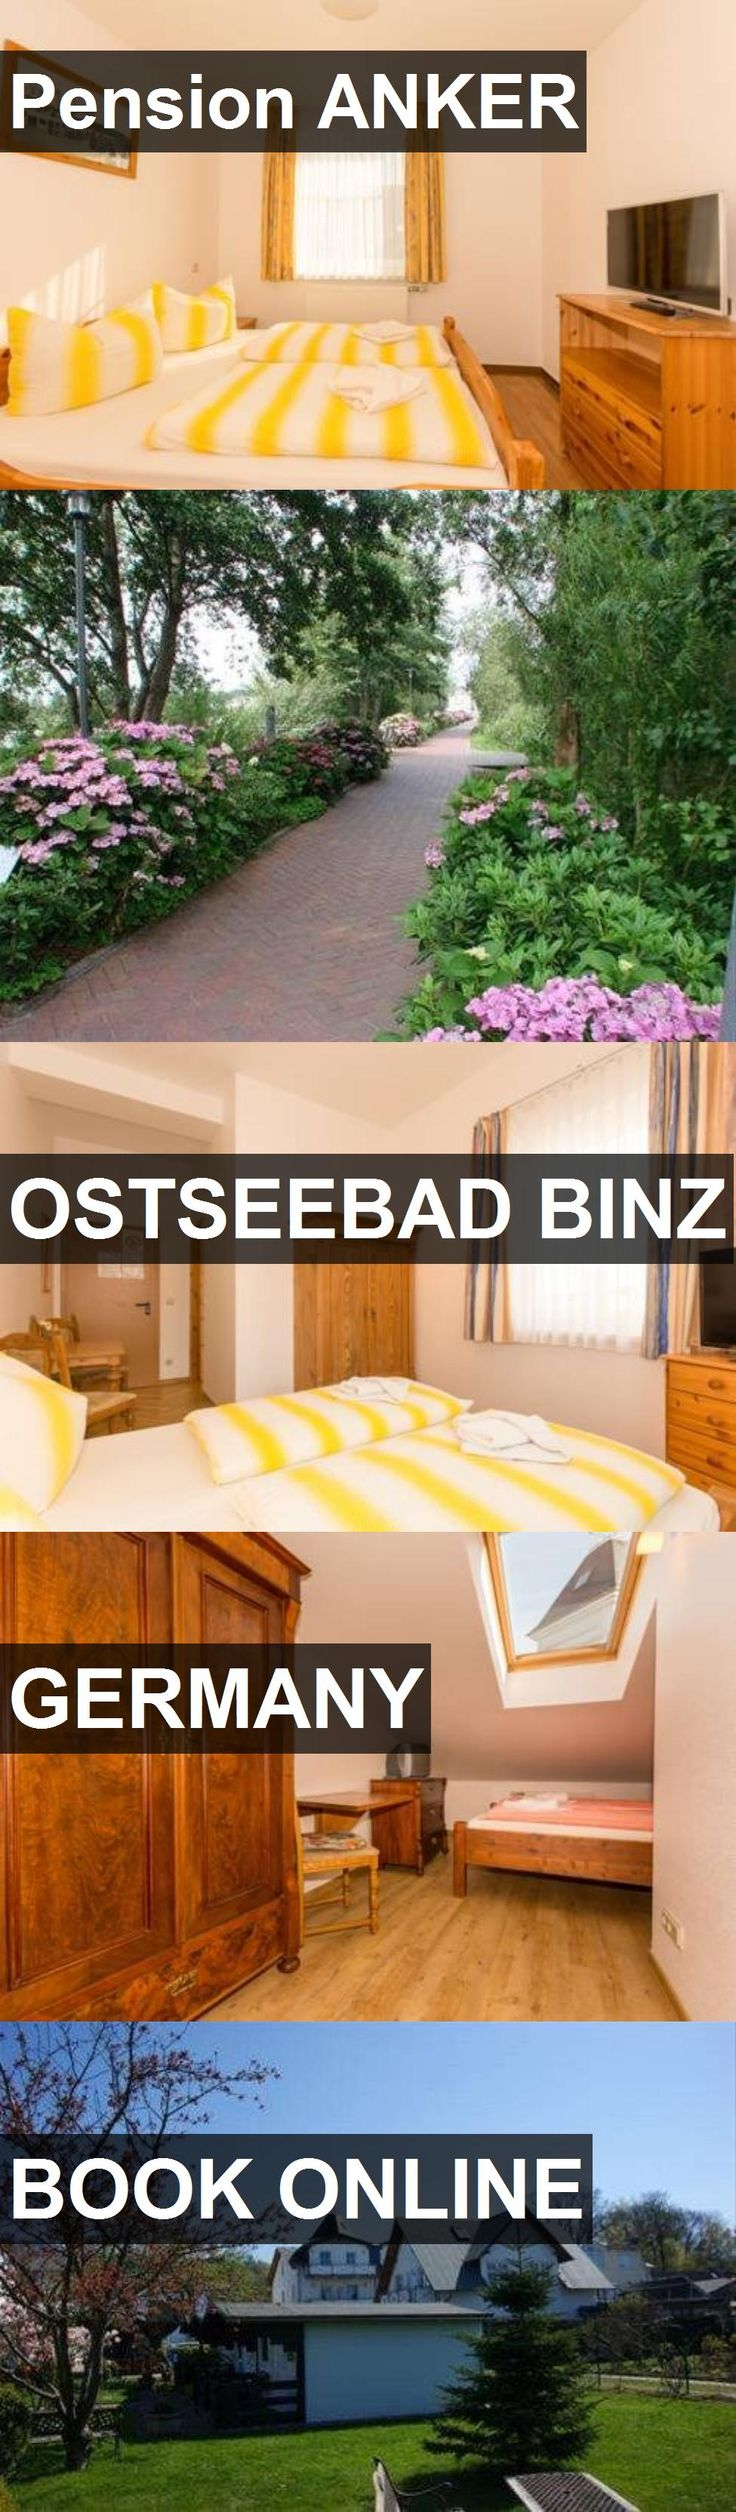 Hotel Pension ANKER in Ostseebad Binz, Germany. For more information, photos, reviews and best prices please follow the link. #Germany #OstseebadBinz #travel #vacation #hotel